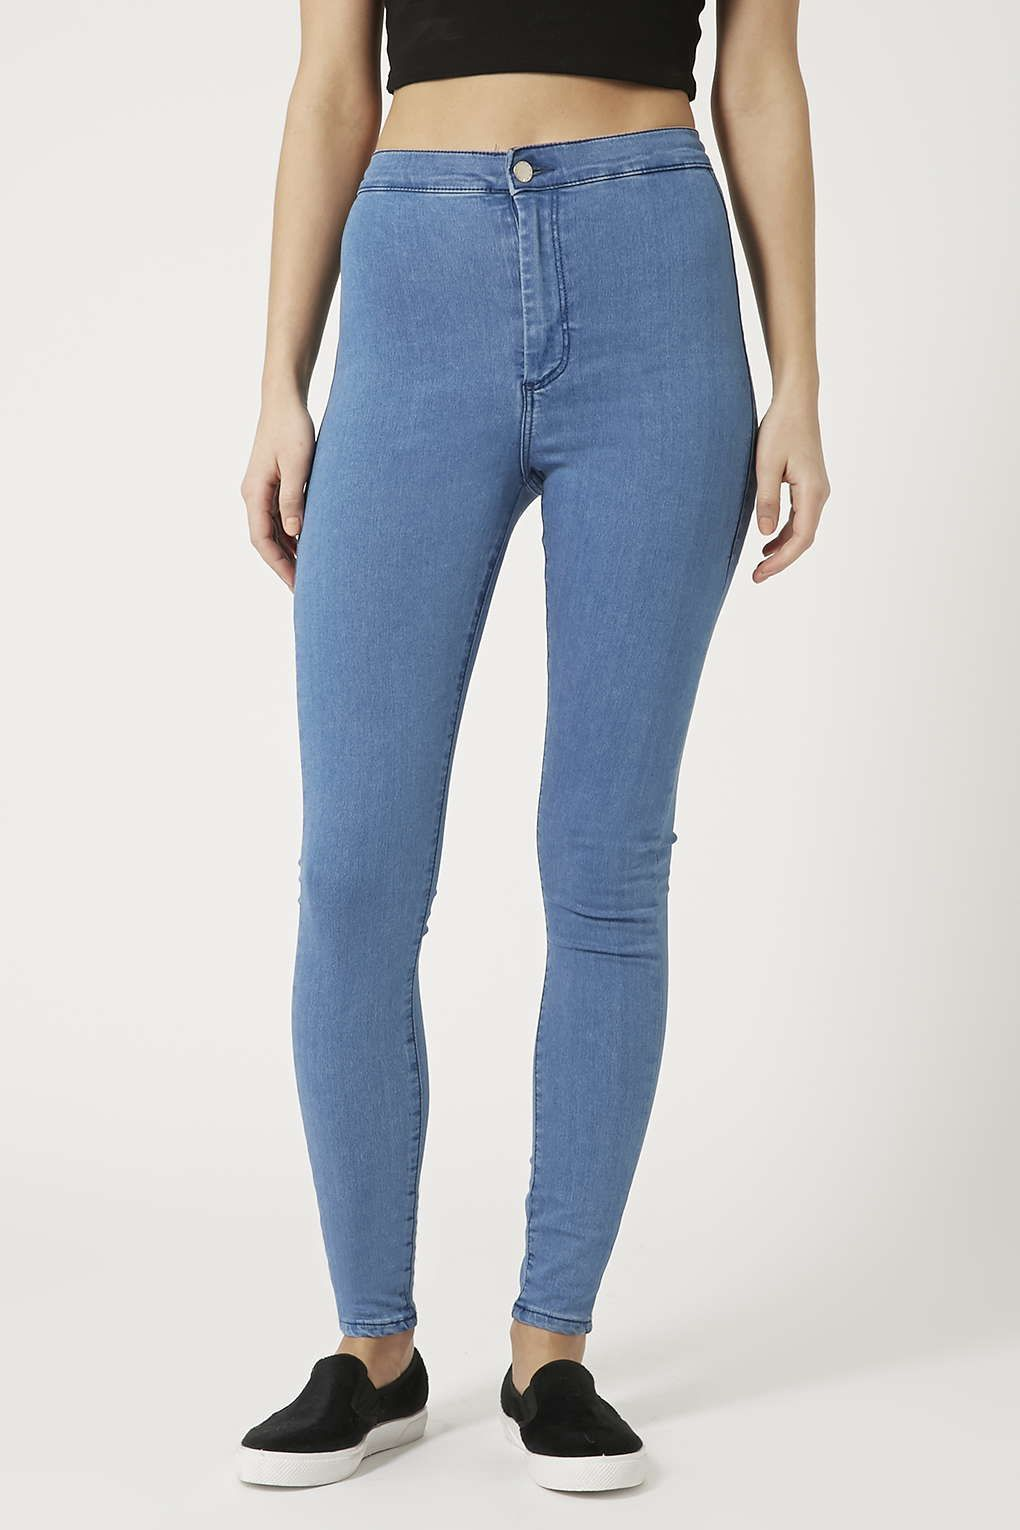 MOTO Pretty Mid-Stone Joni Jeans - Joni Super High Waisted Jeans - Jeans -  Clothing